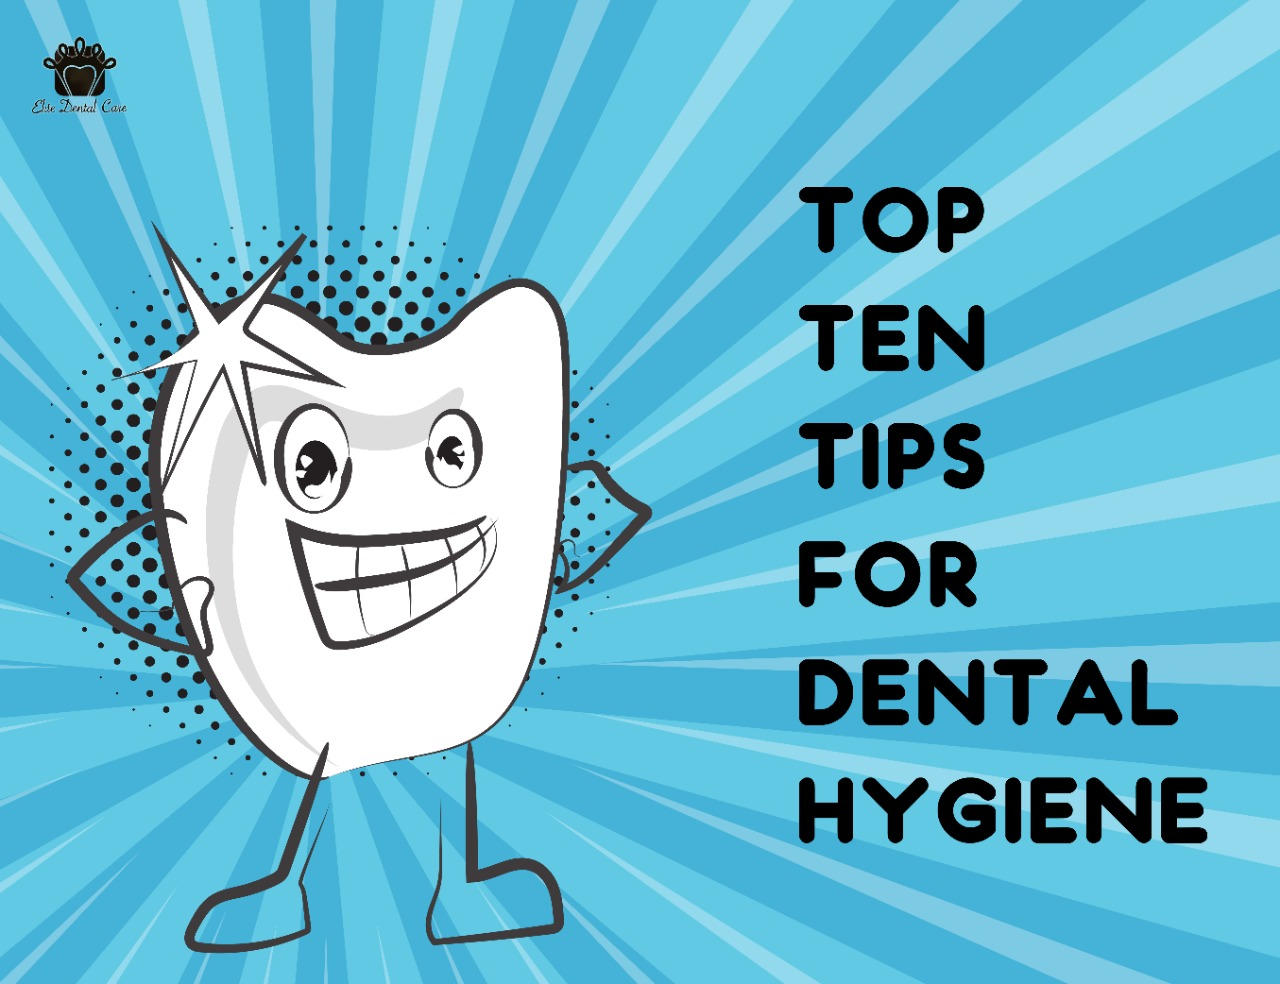 Top ten tips for dental hygiene